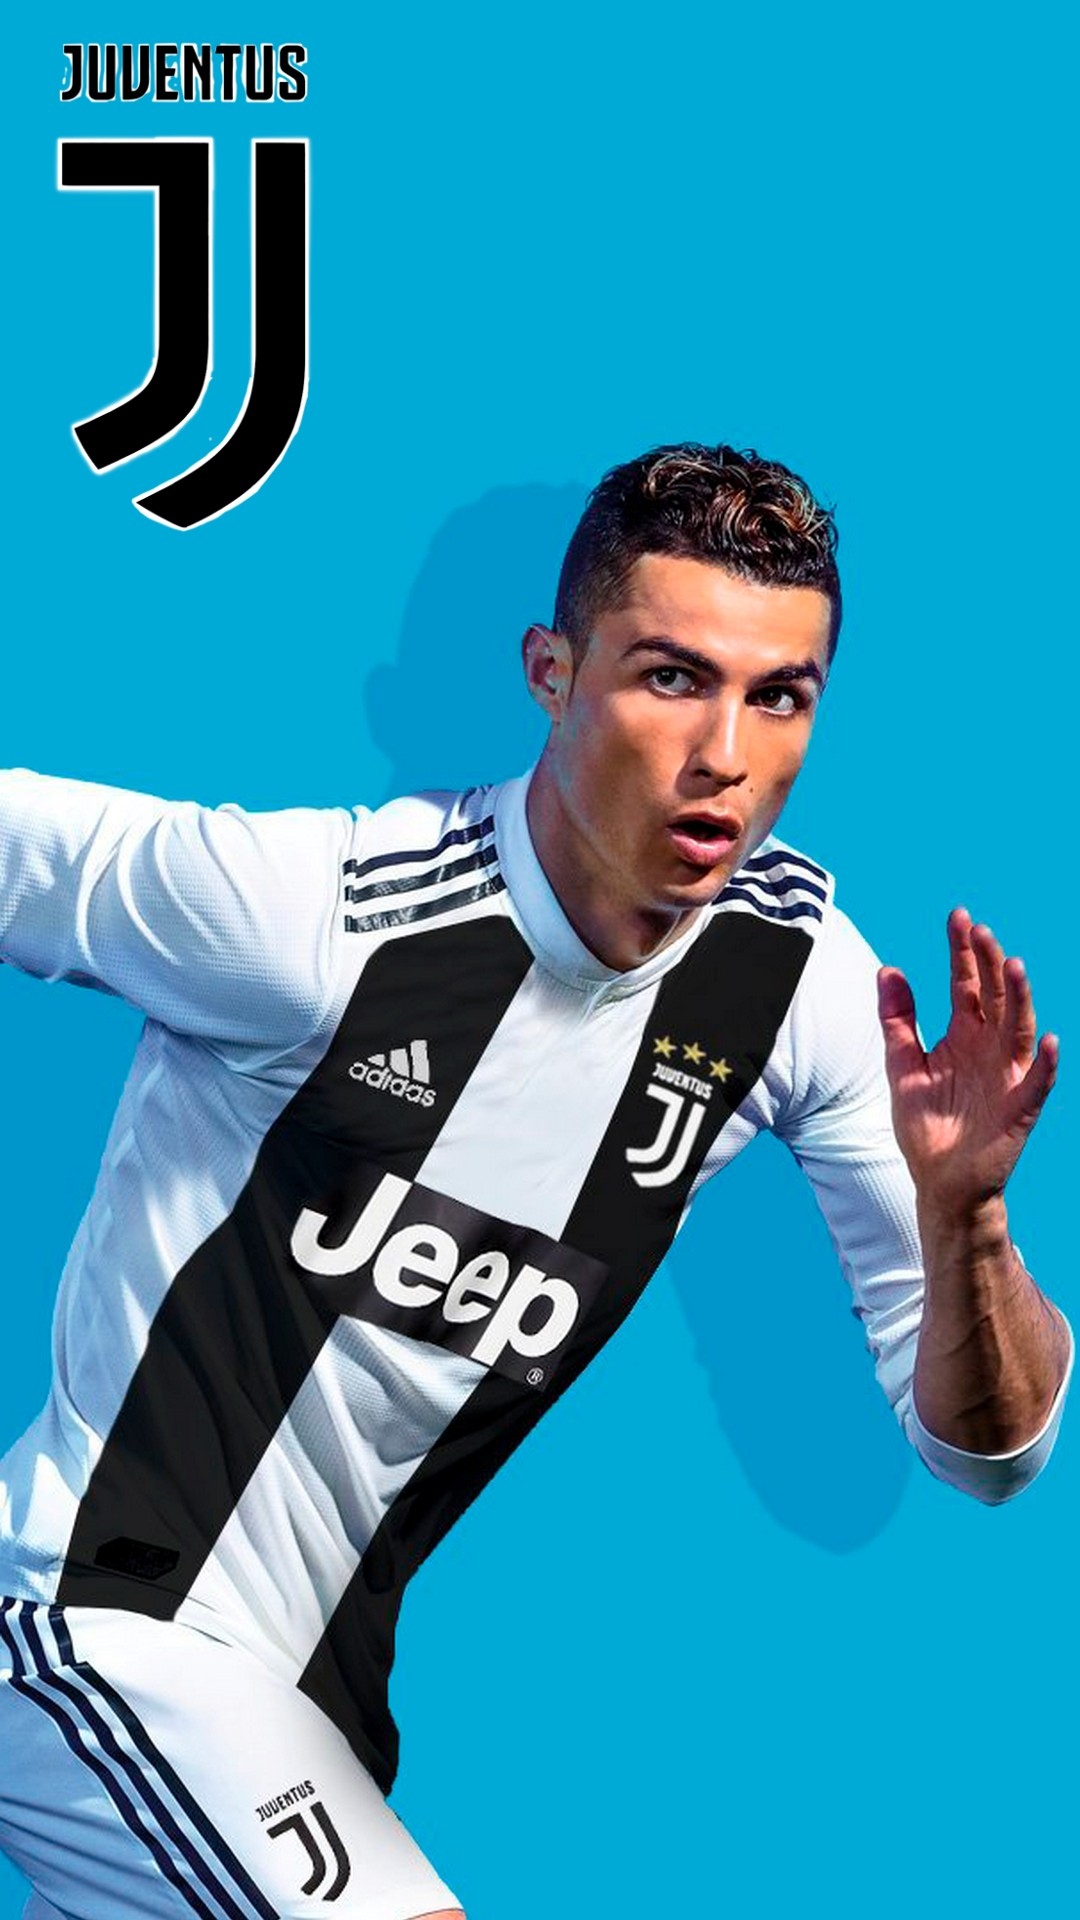 Cristiano Ronaldo Juventus Wallpaper Mobile 2021 Football Wallpaper 1080x1920